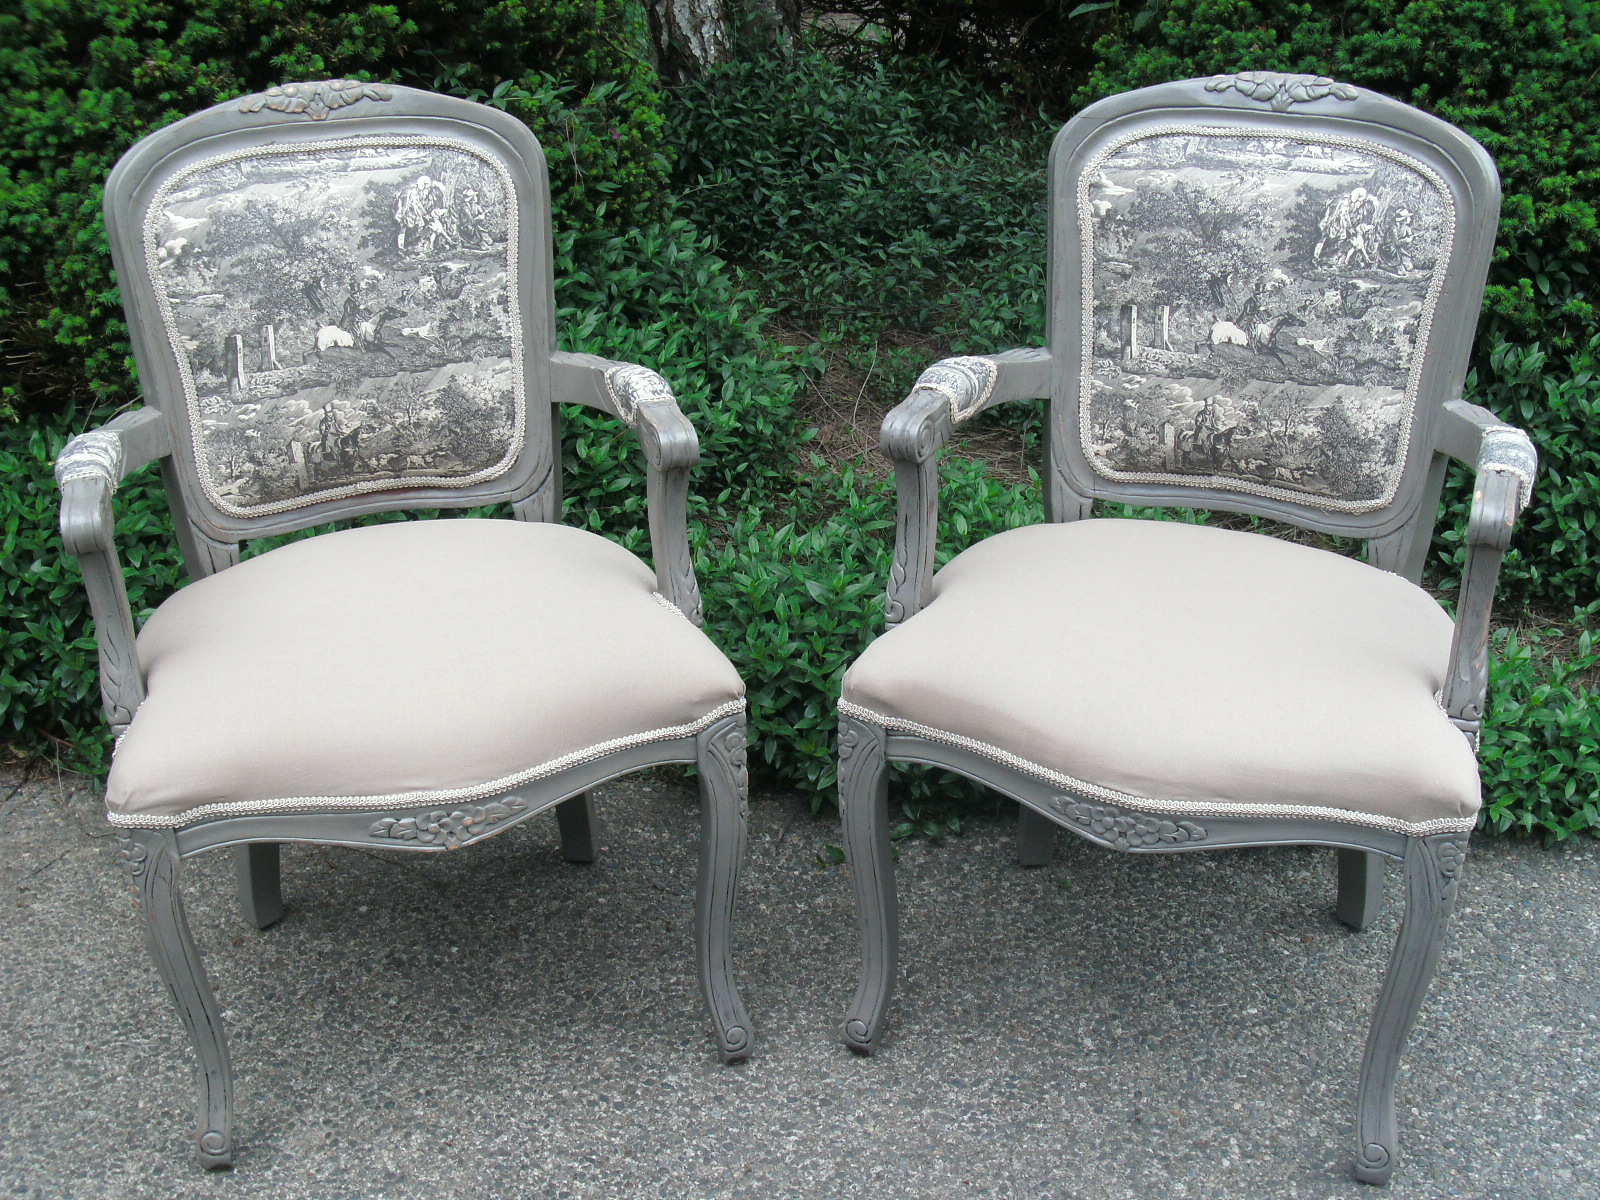 Toile Chair A Touch Of Mink Slate Gray Toile French Chairs Pretty